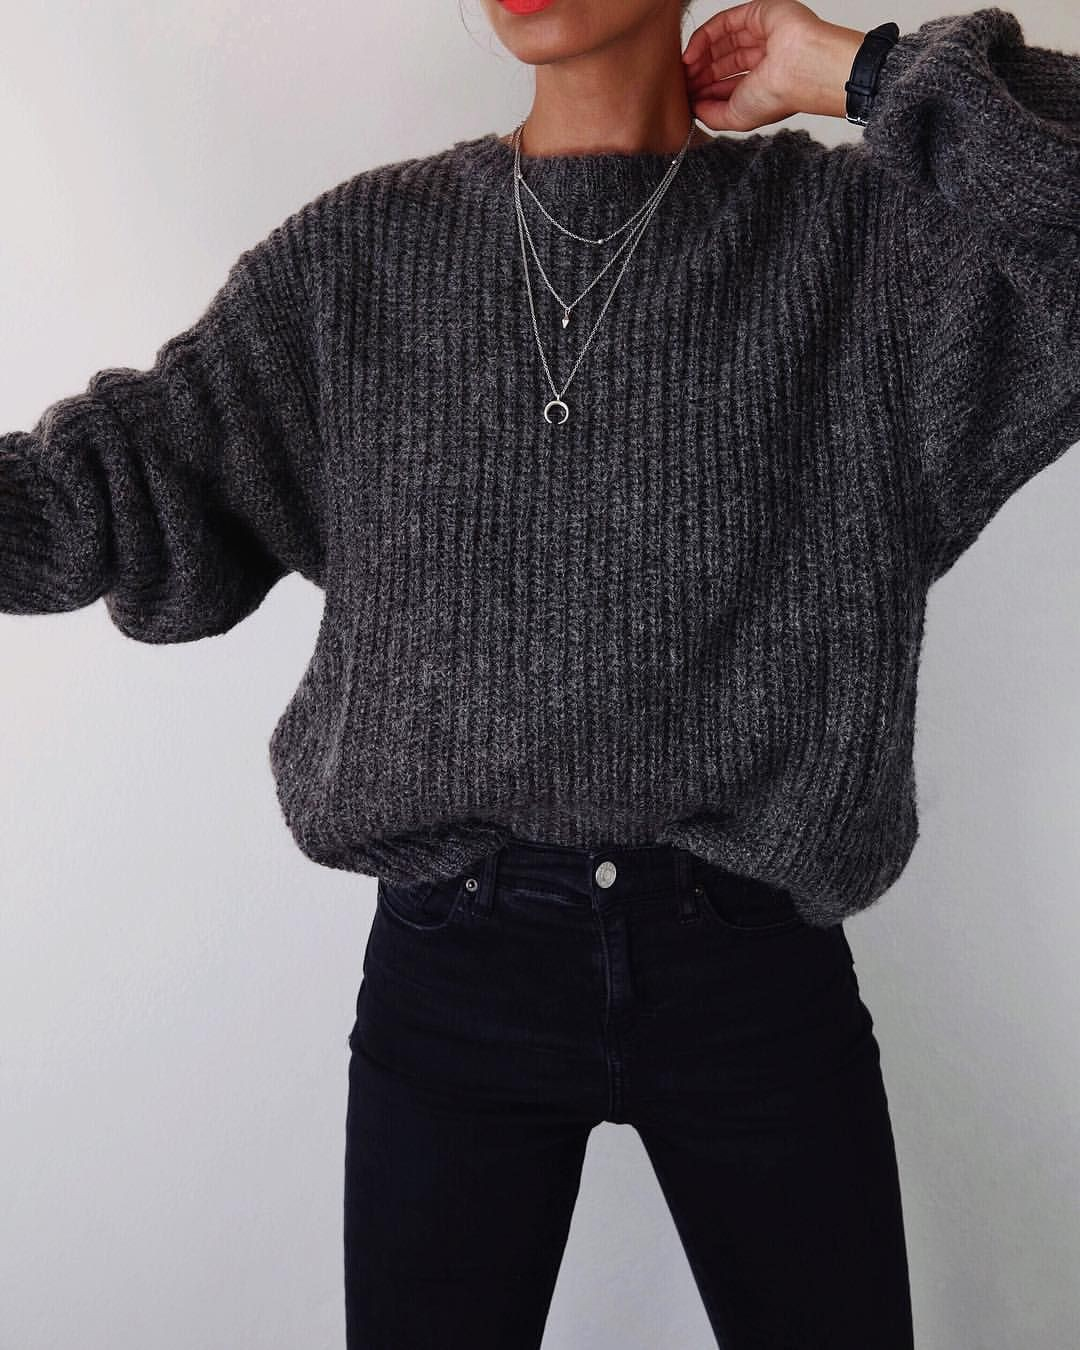 Black sweater outfit aesthetic, casual wear